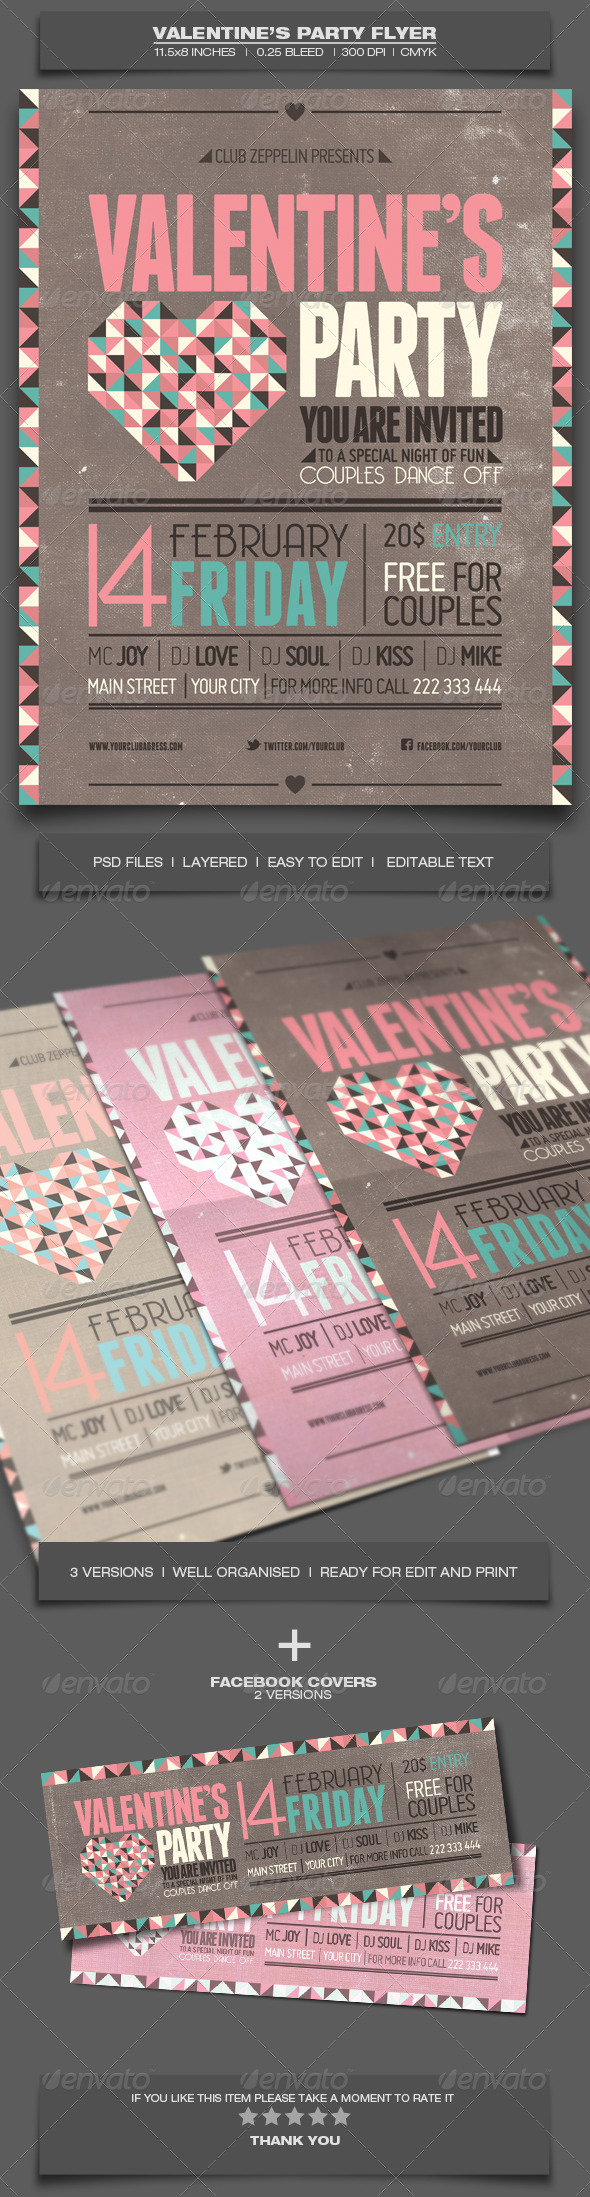 Valentine's Day Party - Event Flyer Template 5 - Holidays Events